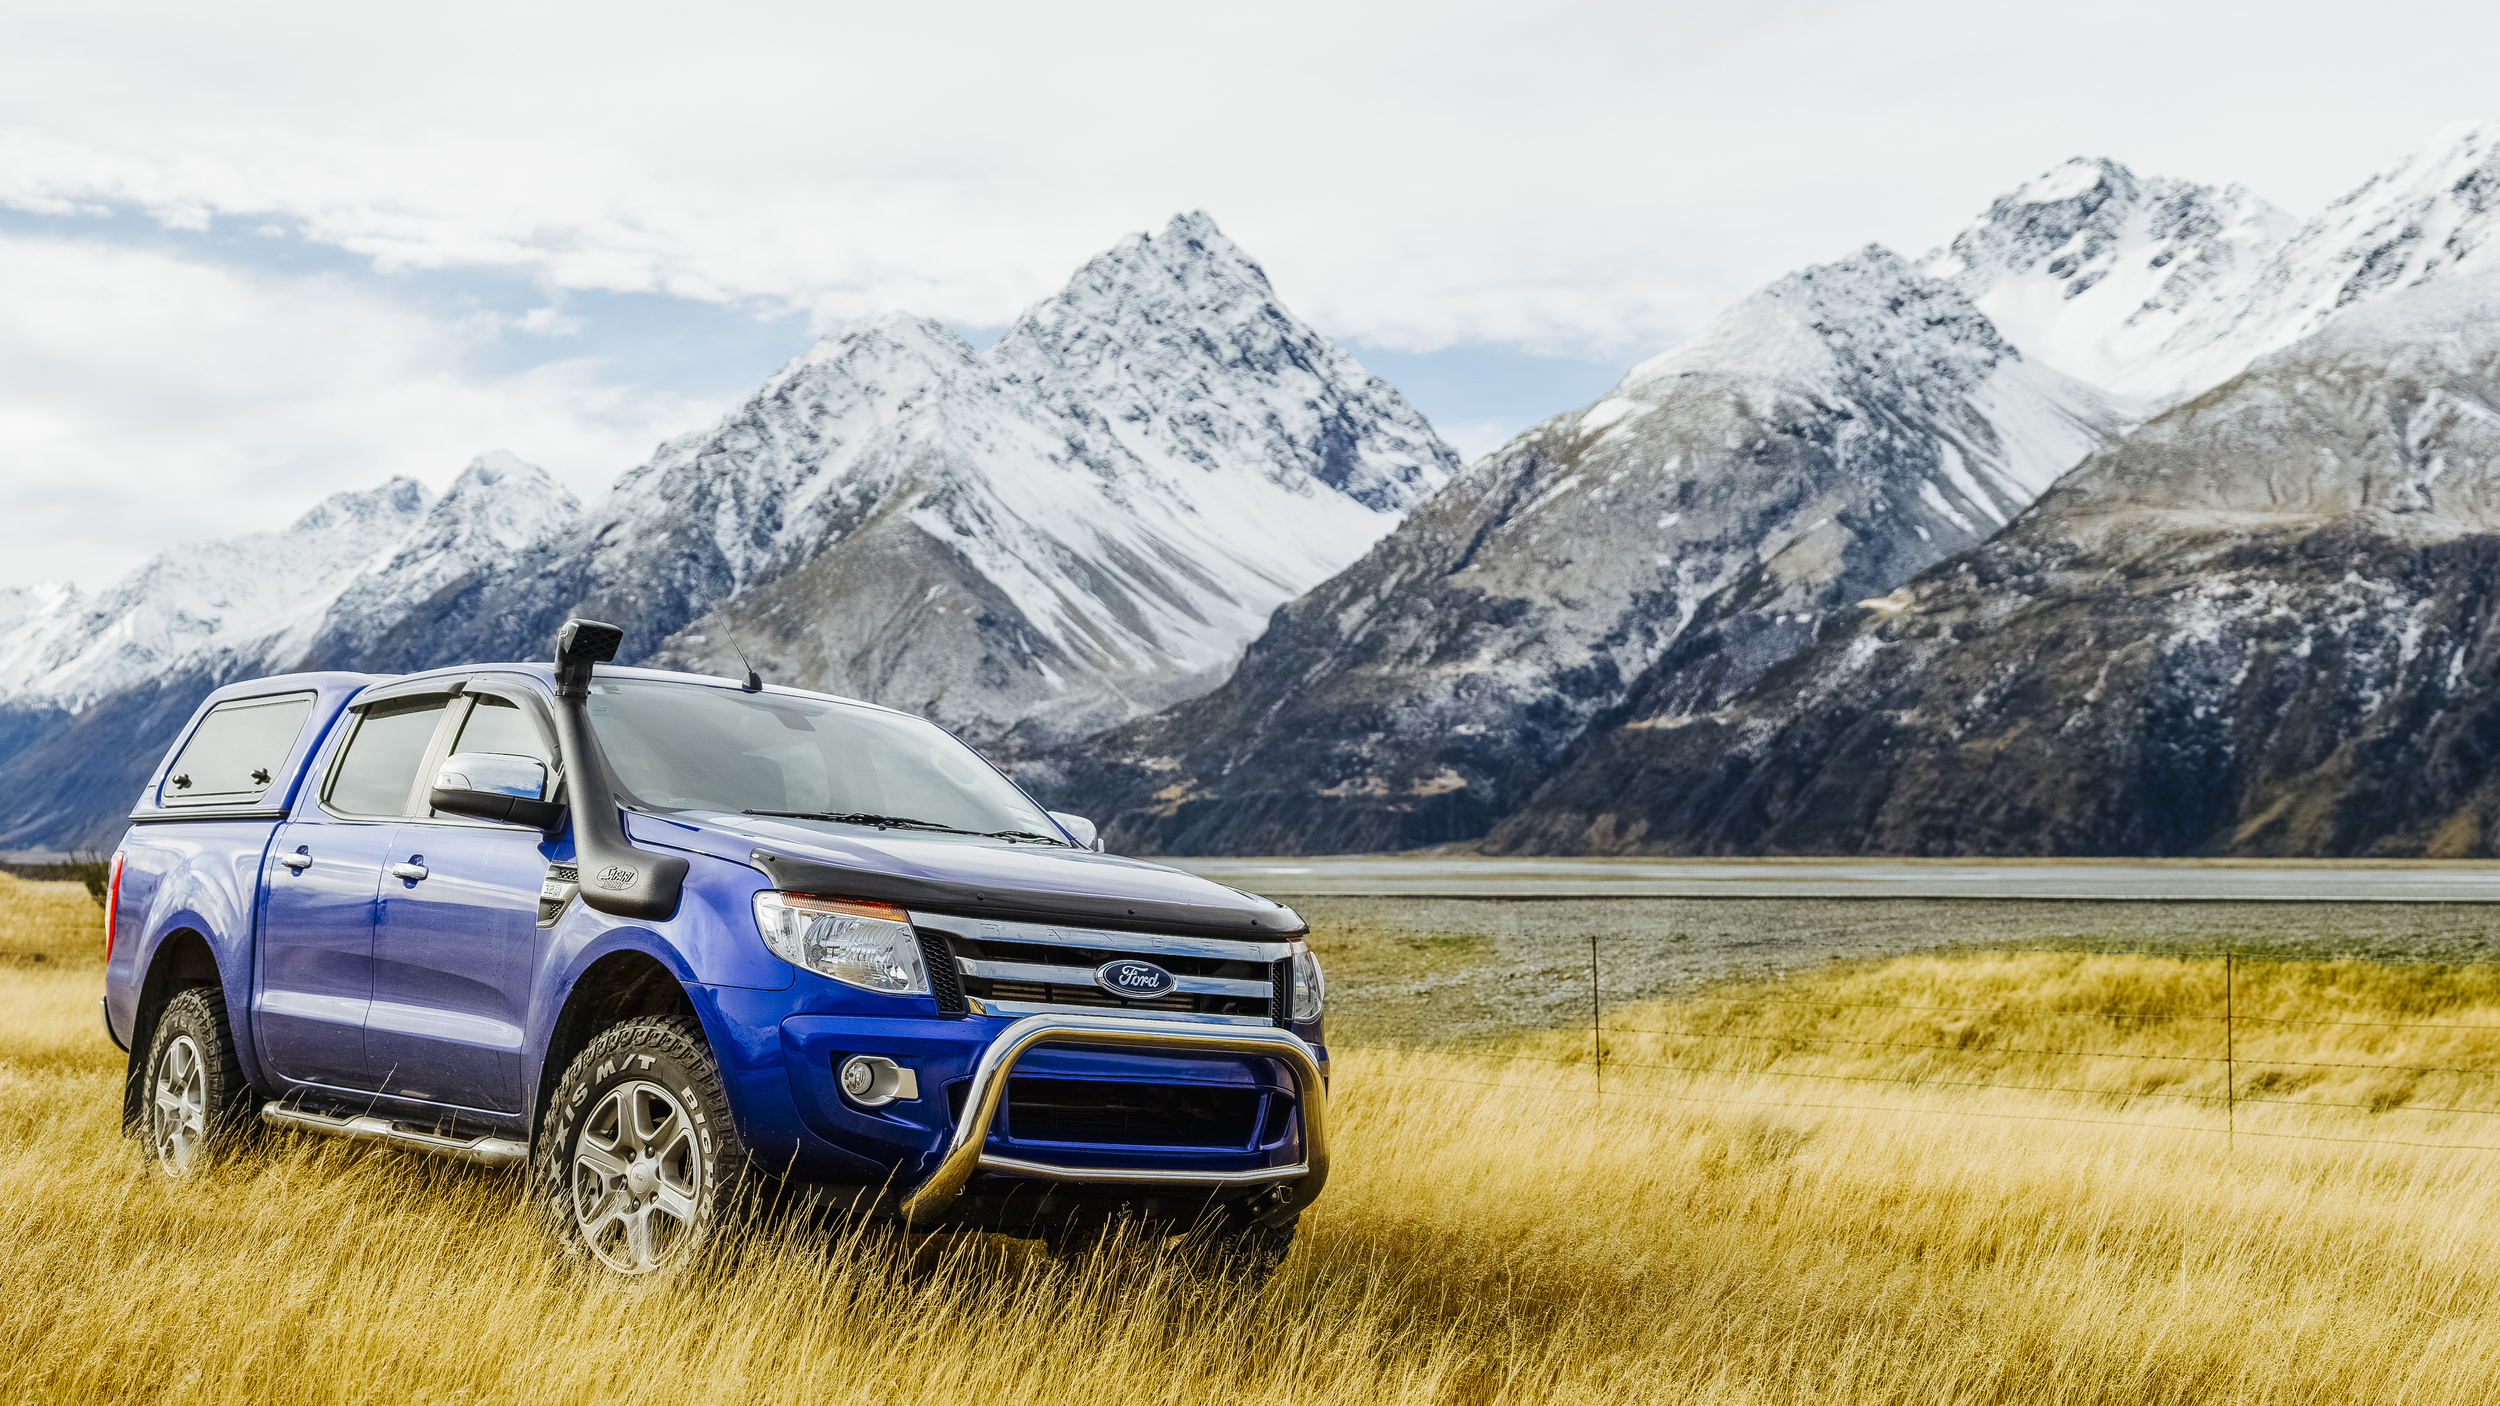 Ford_Ranger_NZ_JacobCBoynton-1.jpg